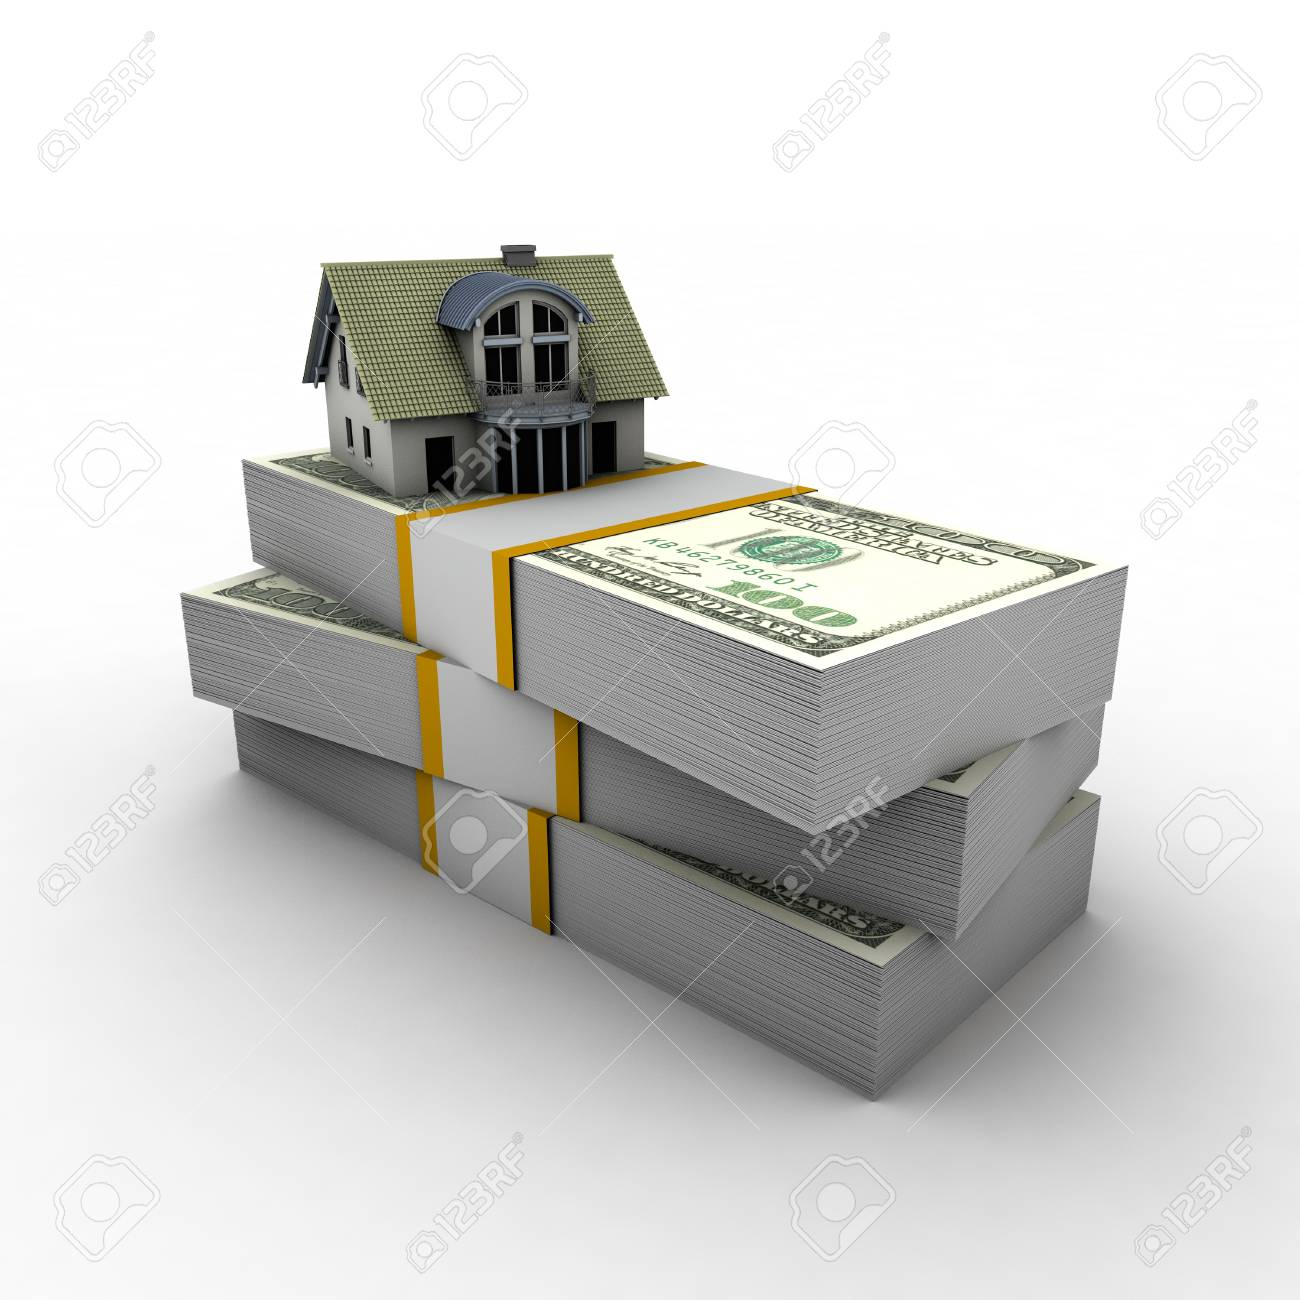 visually described with a mortgage on the house visually money. Stock Photo - 62468926